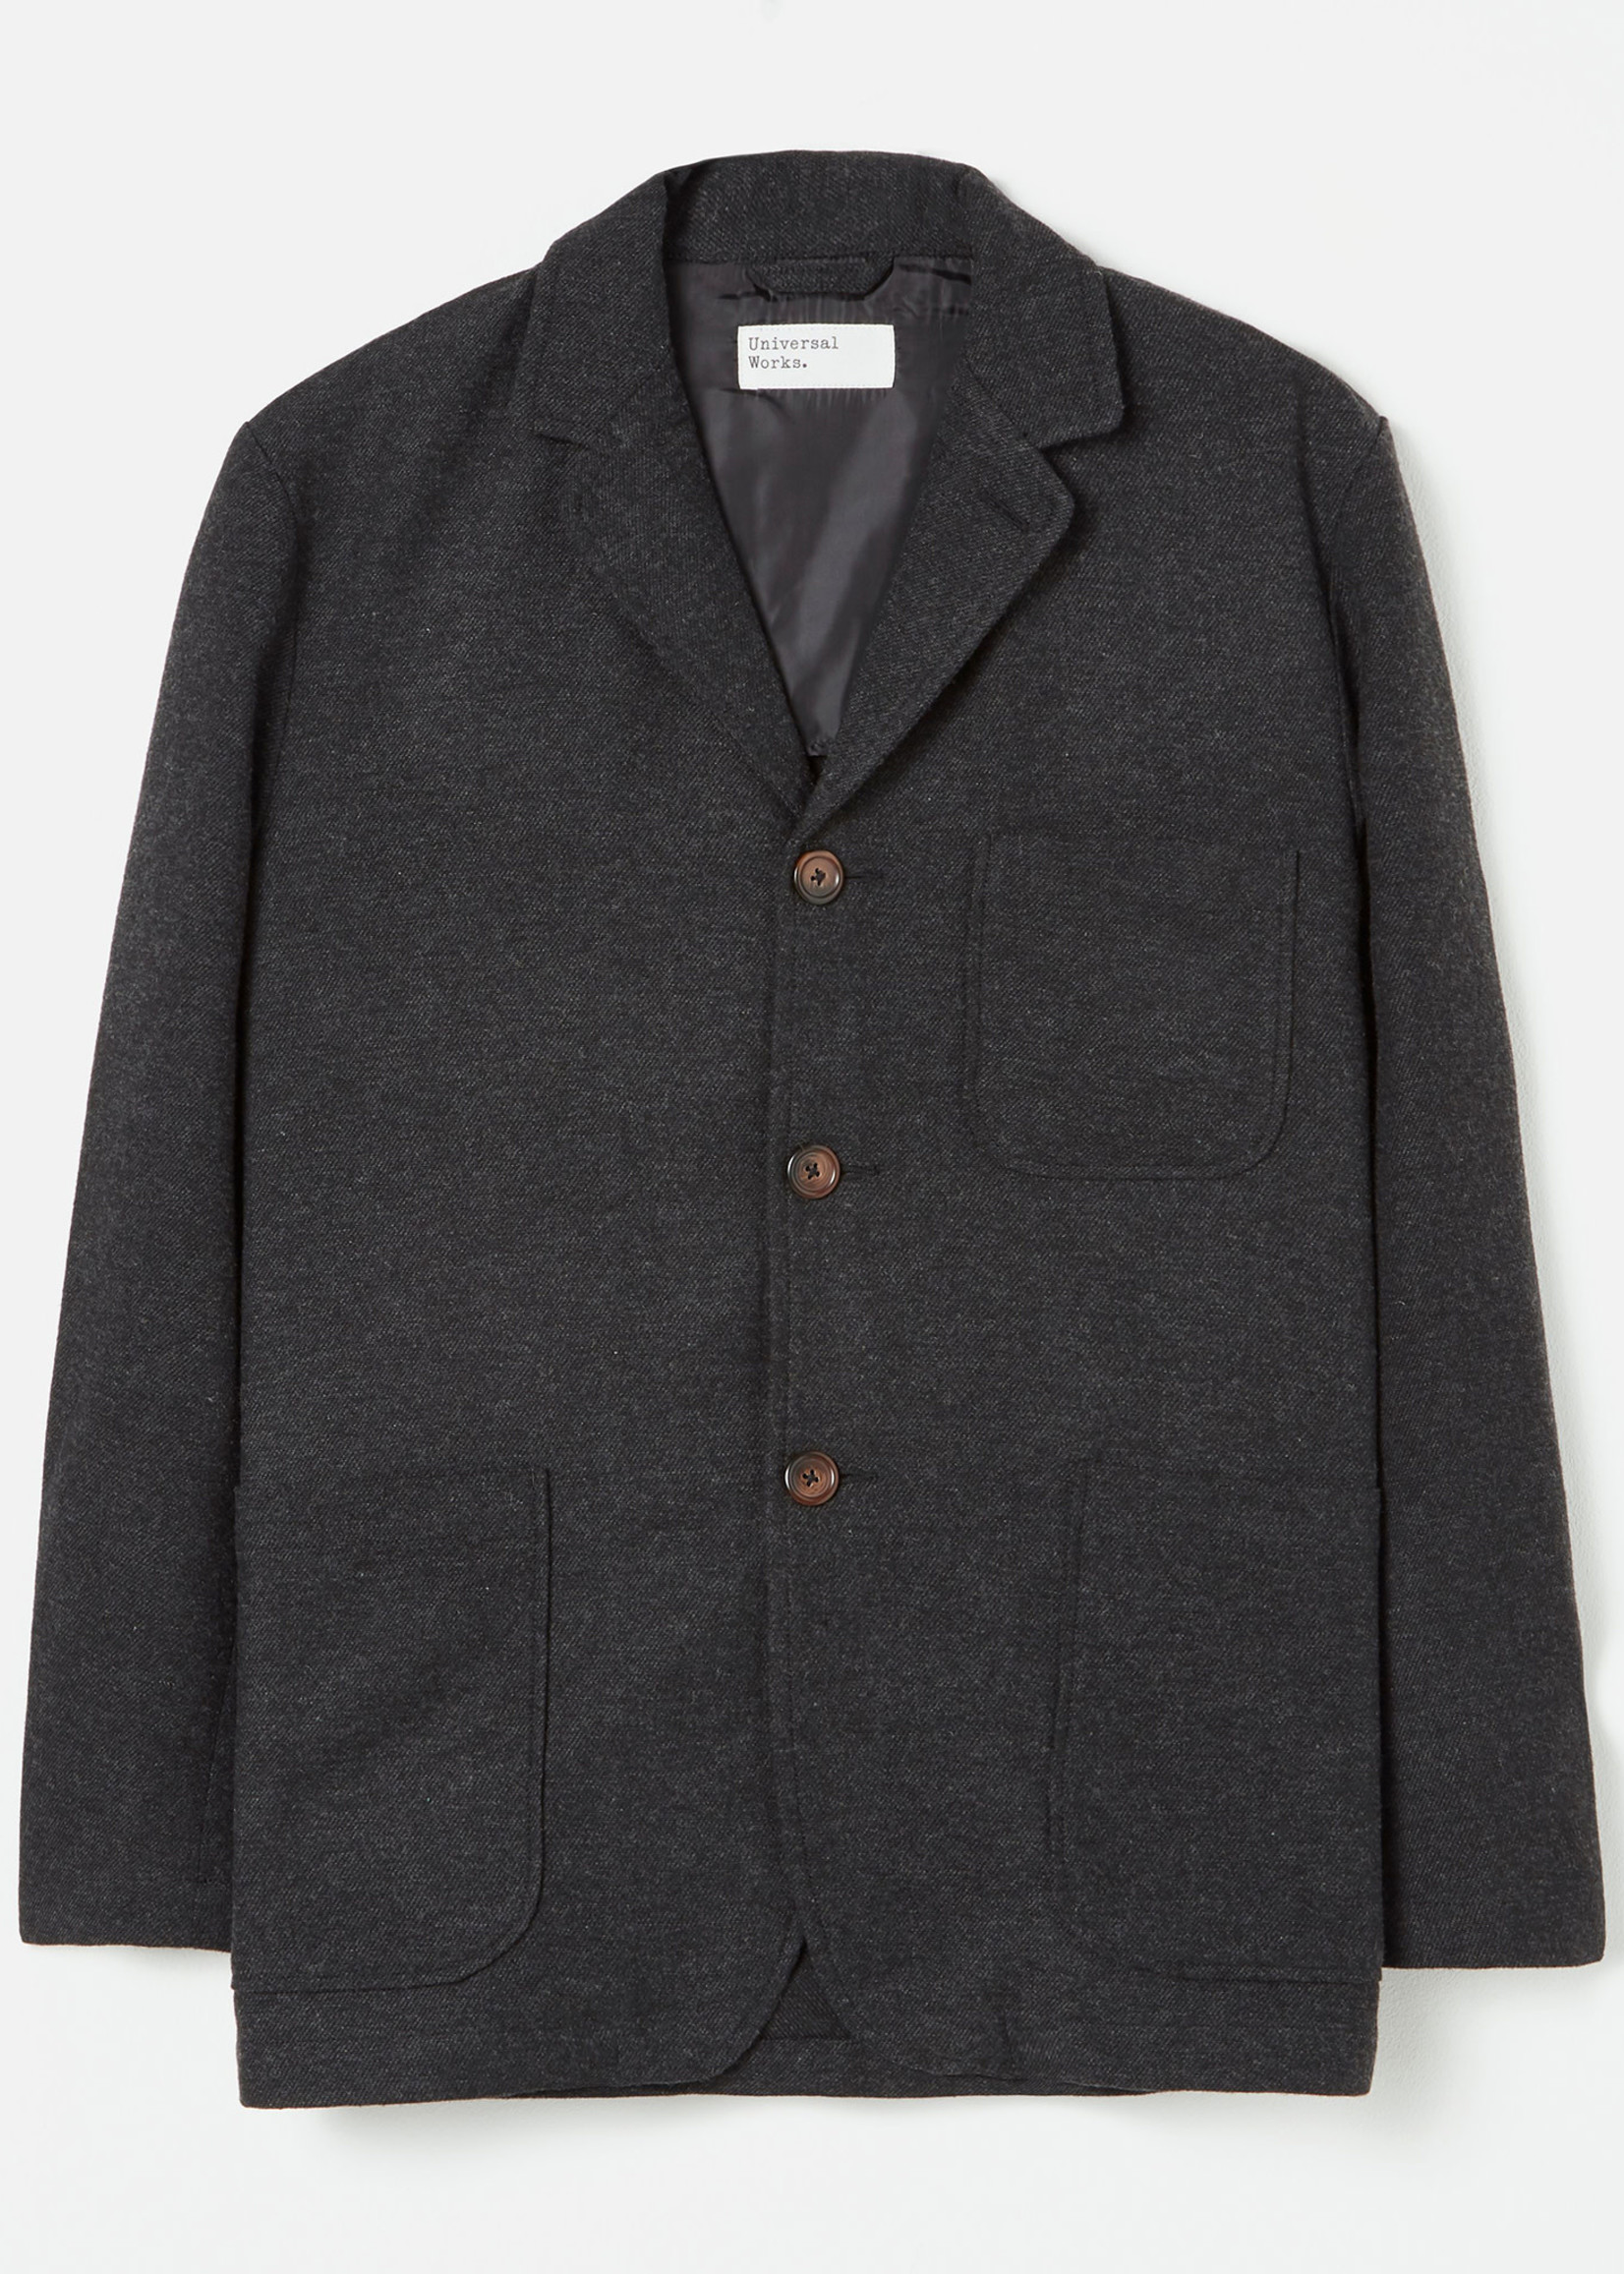 Universal Works Three Button Jacket Charcoal Wool/Poly by Universal Works